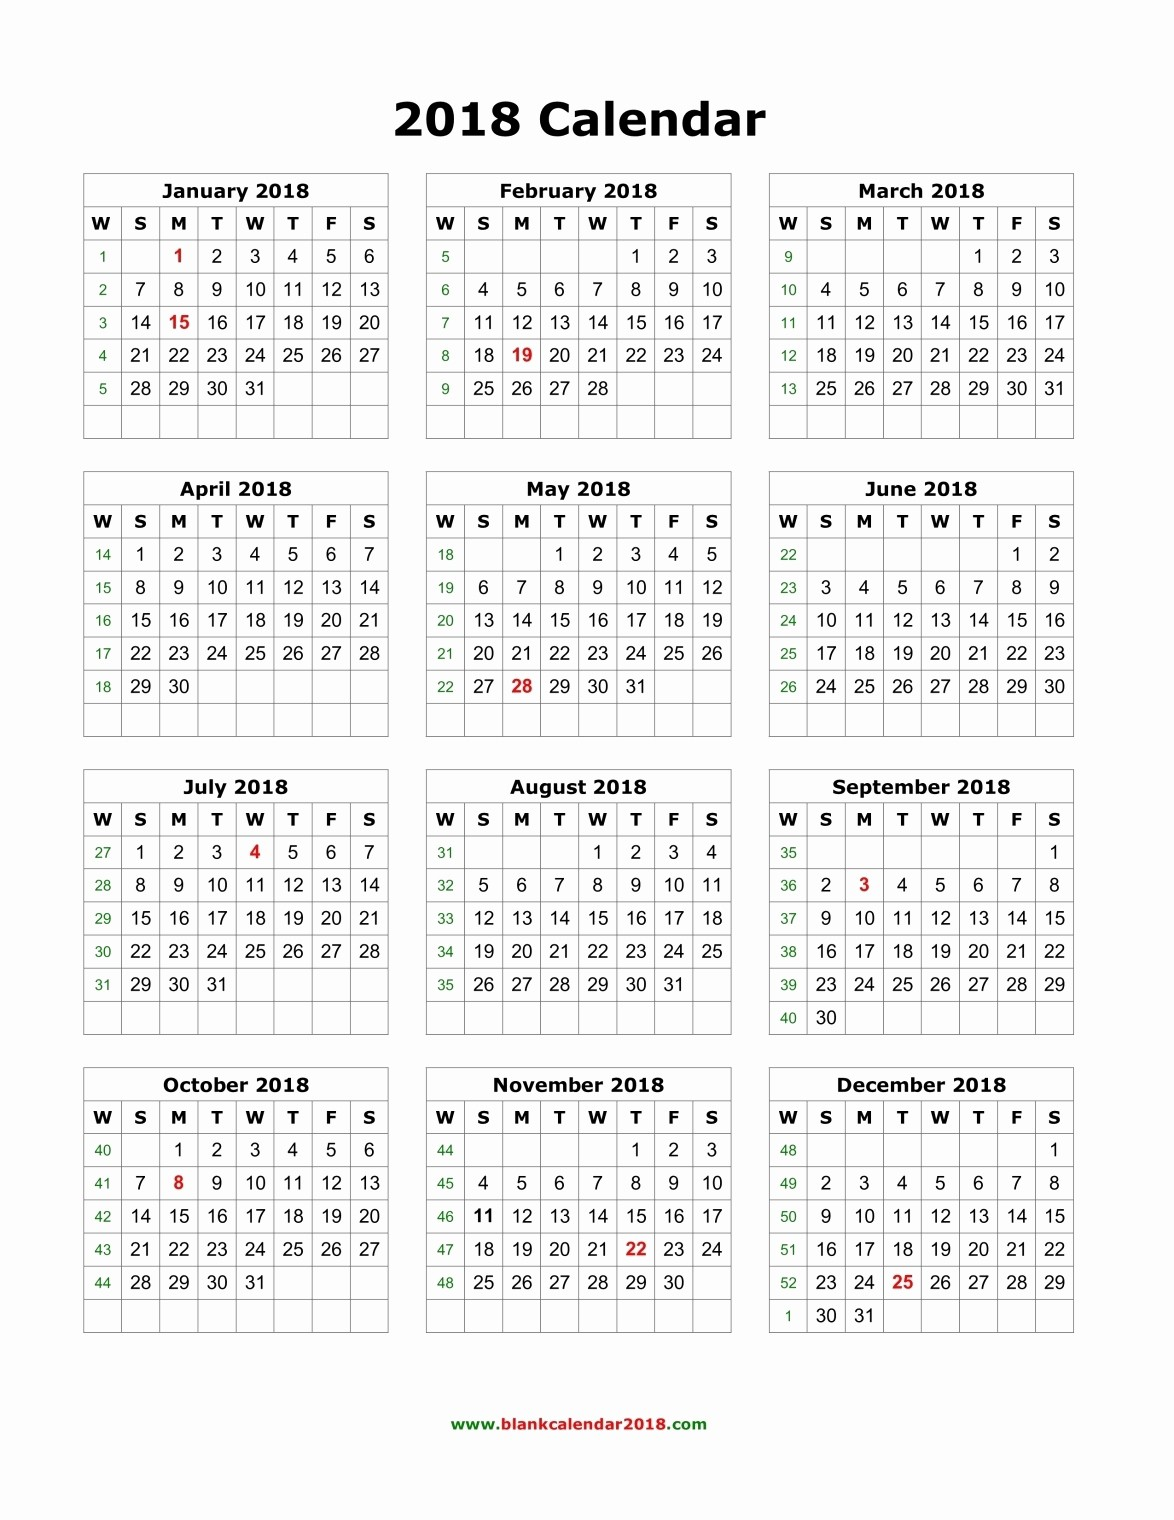 Free Printable 2018 Calendar Templates Beautiful Blank Calendar 2018